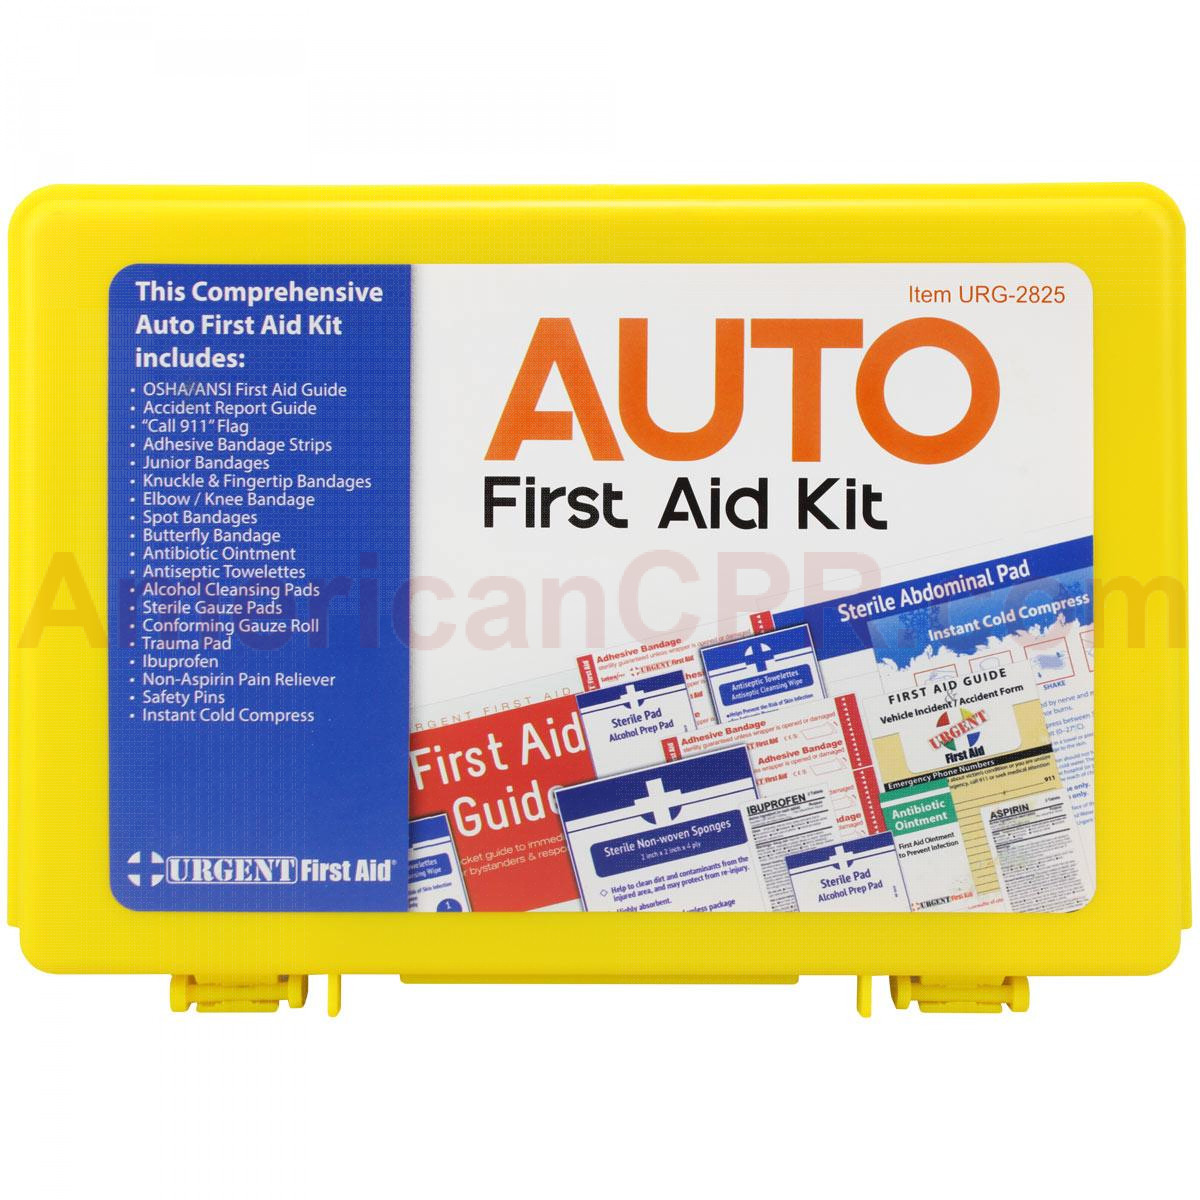 Fundraiser Auto First Aid Kit - Urgent First aid